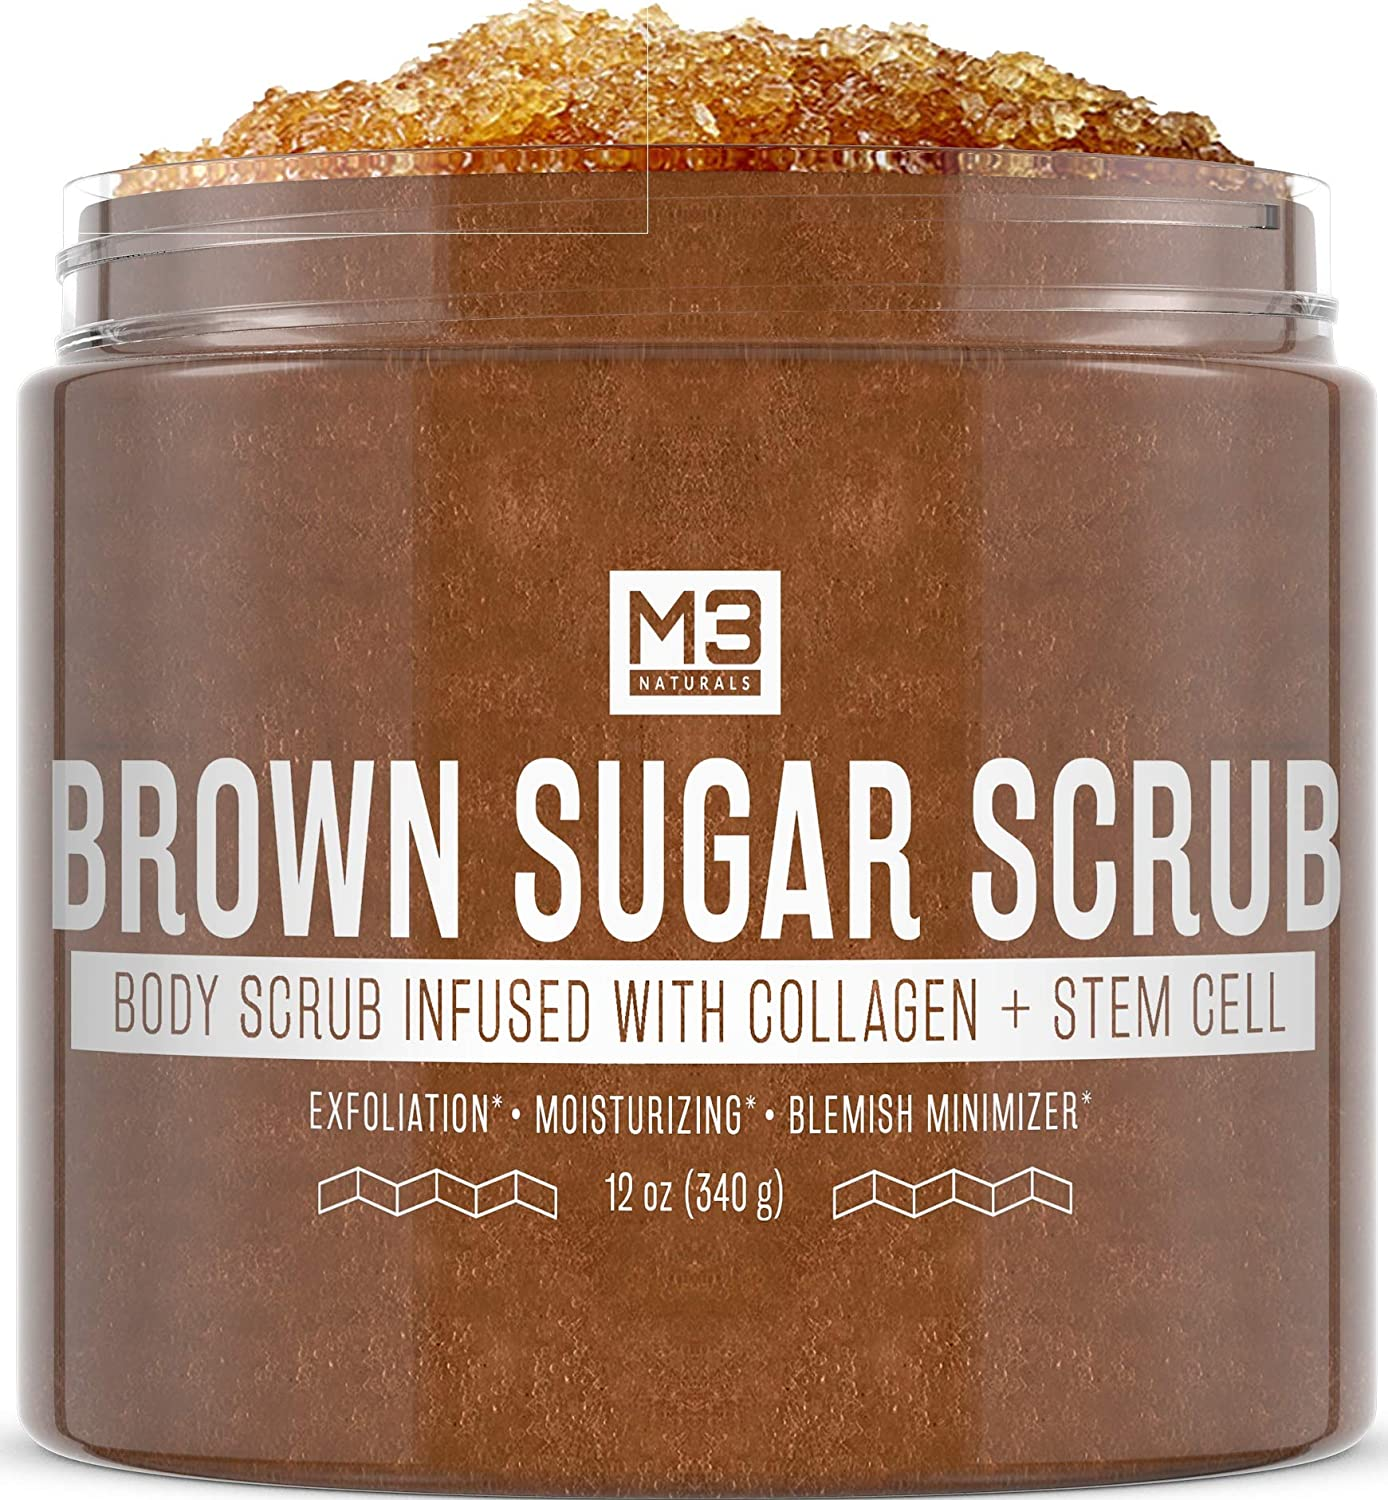 M3 Naturals Brown Sugar Scrub Infused with Collagen and Stem Cell Natural Souffle Body and Face Scrub for Acne Cellulite Stretch Marks Spider Veins Scars Wrinkles Skin Care Exfoliator 12 oz : Beauty